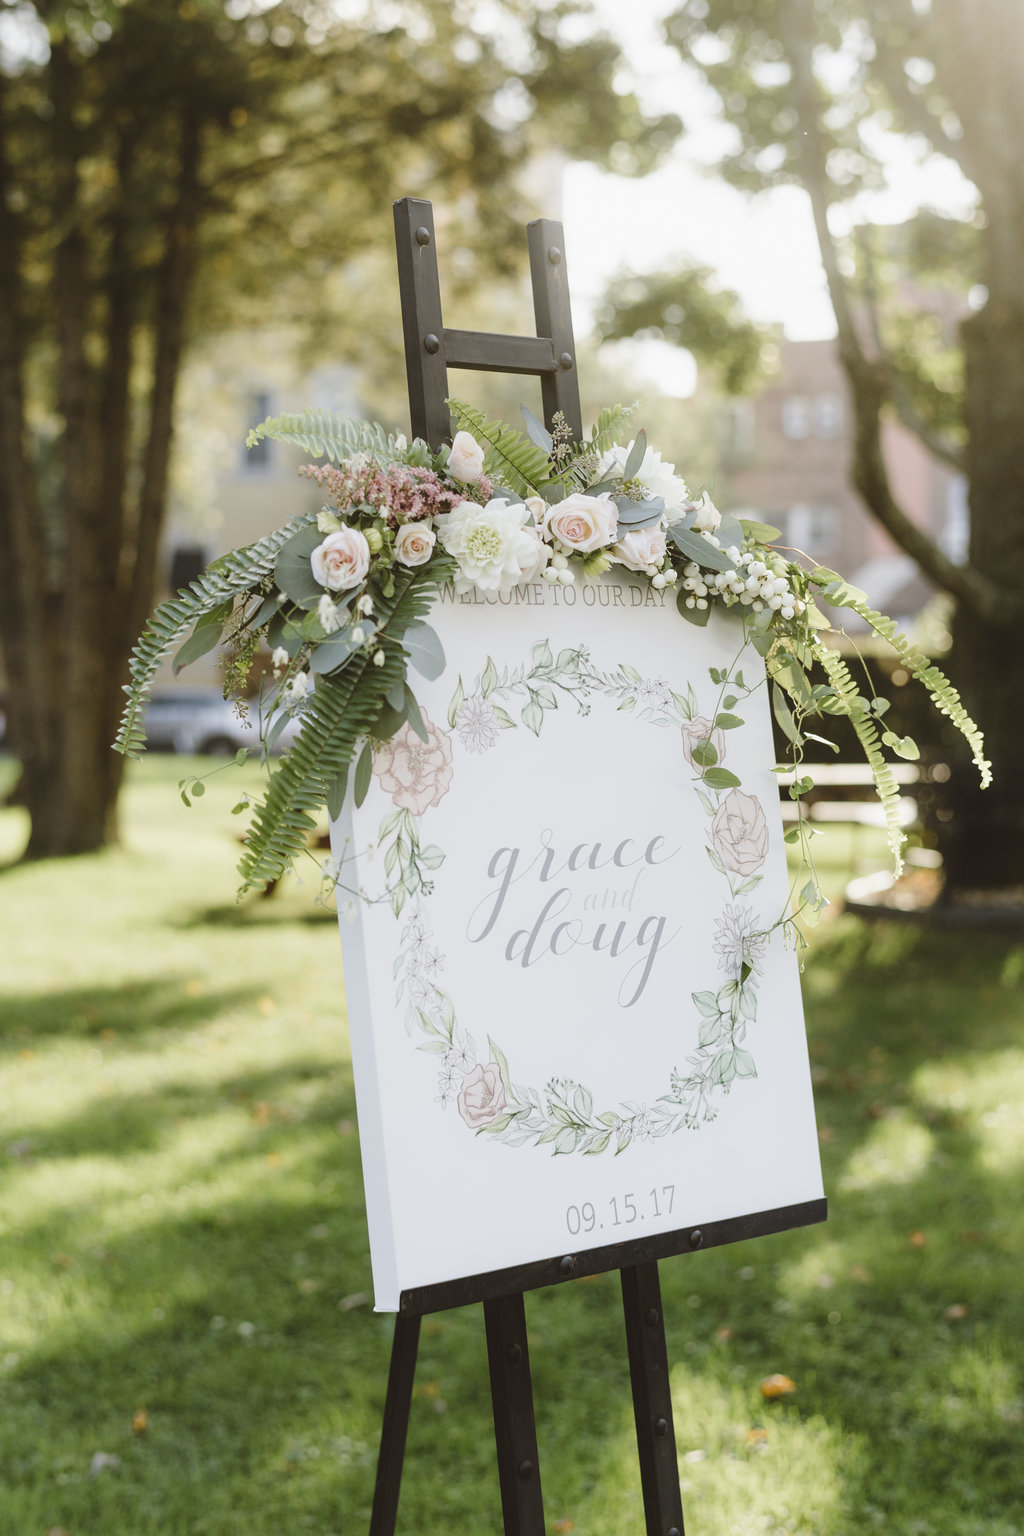 Monica_Relyea_Events_Alicia_King_Photography_Highschool_Sweethearts_Wedding_Grace_and-Doug-Senate-Garage-welcome-sign69